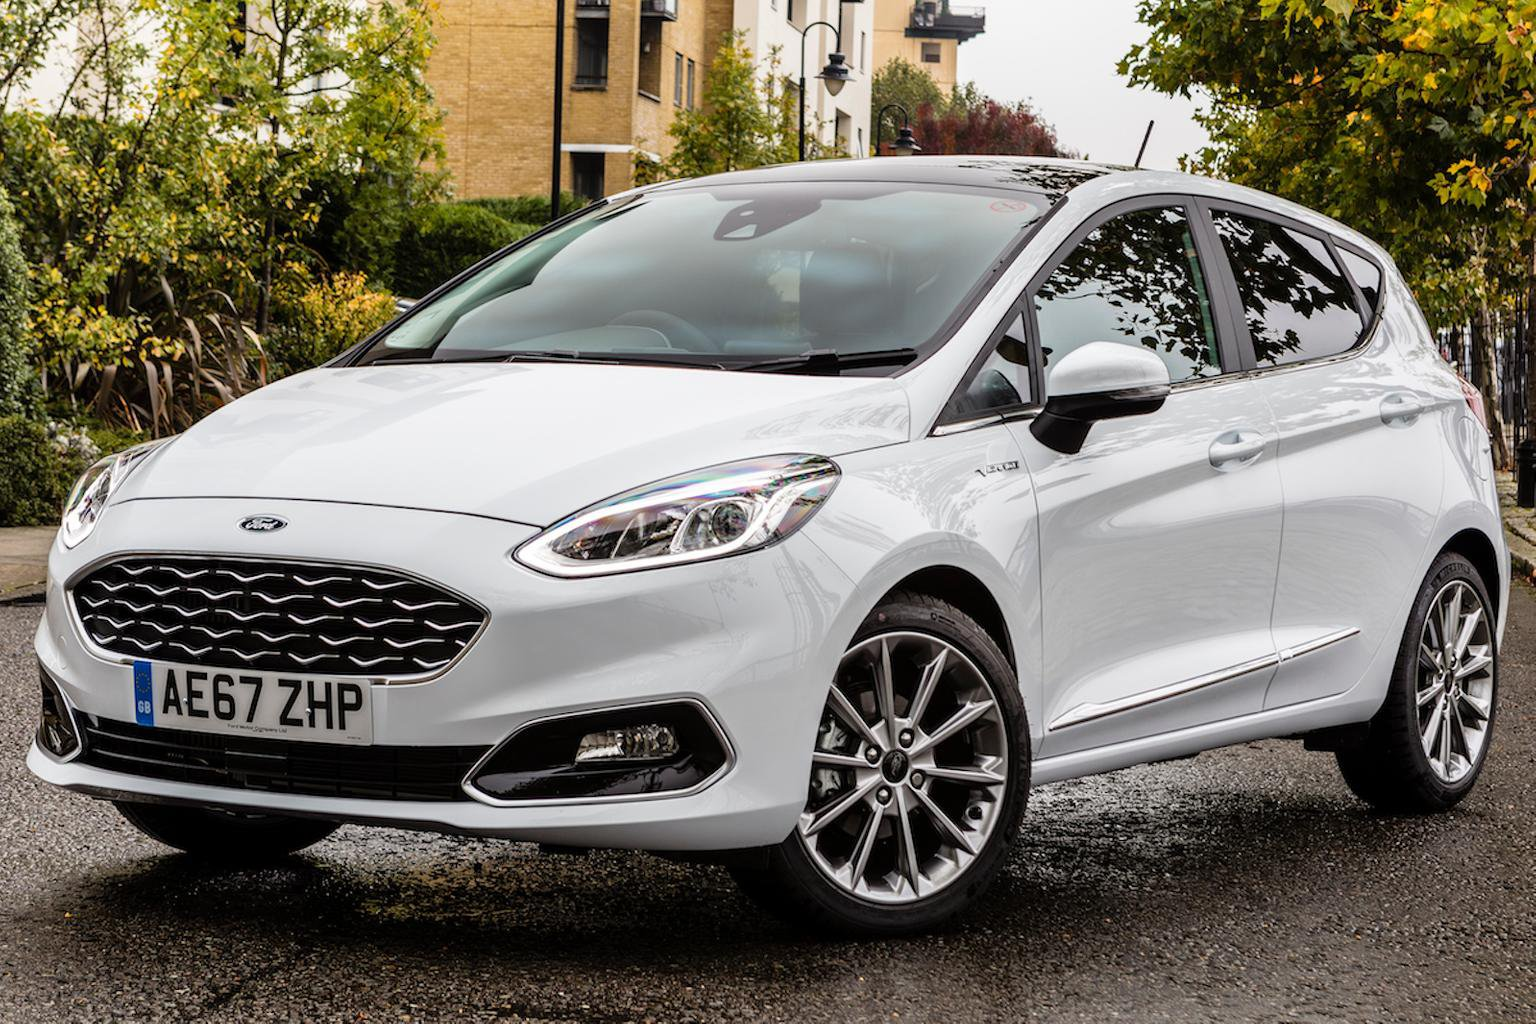 2017 Ford Fiesta Vignale review - price, specs and release dates